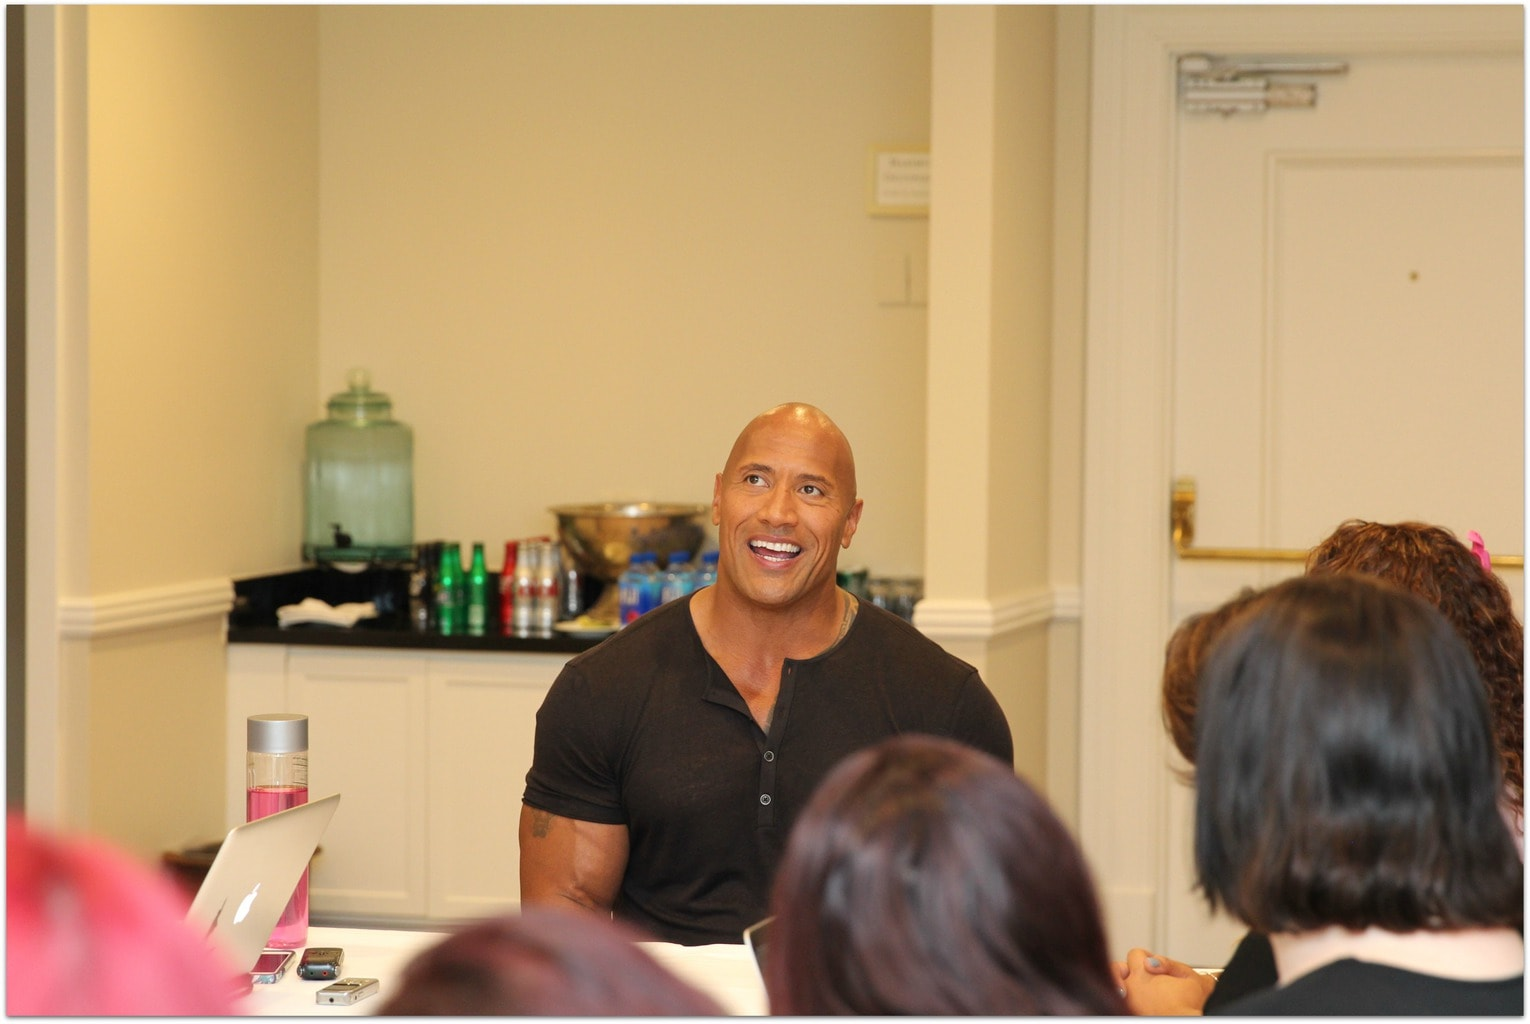 Exclusive Interview With The Rock Dwayne Johnson Food